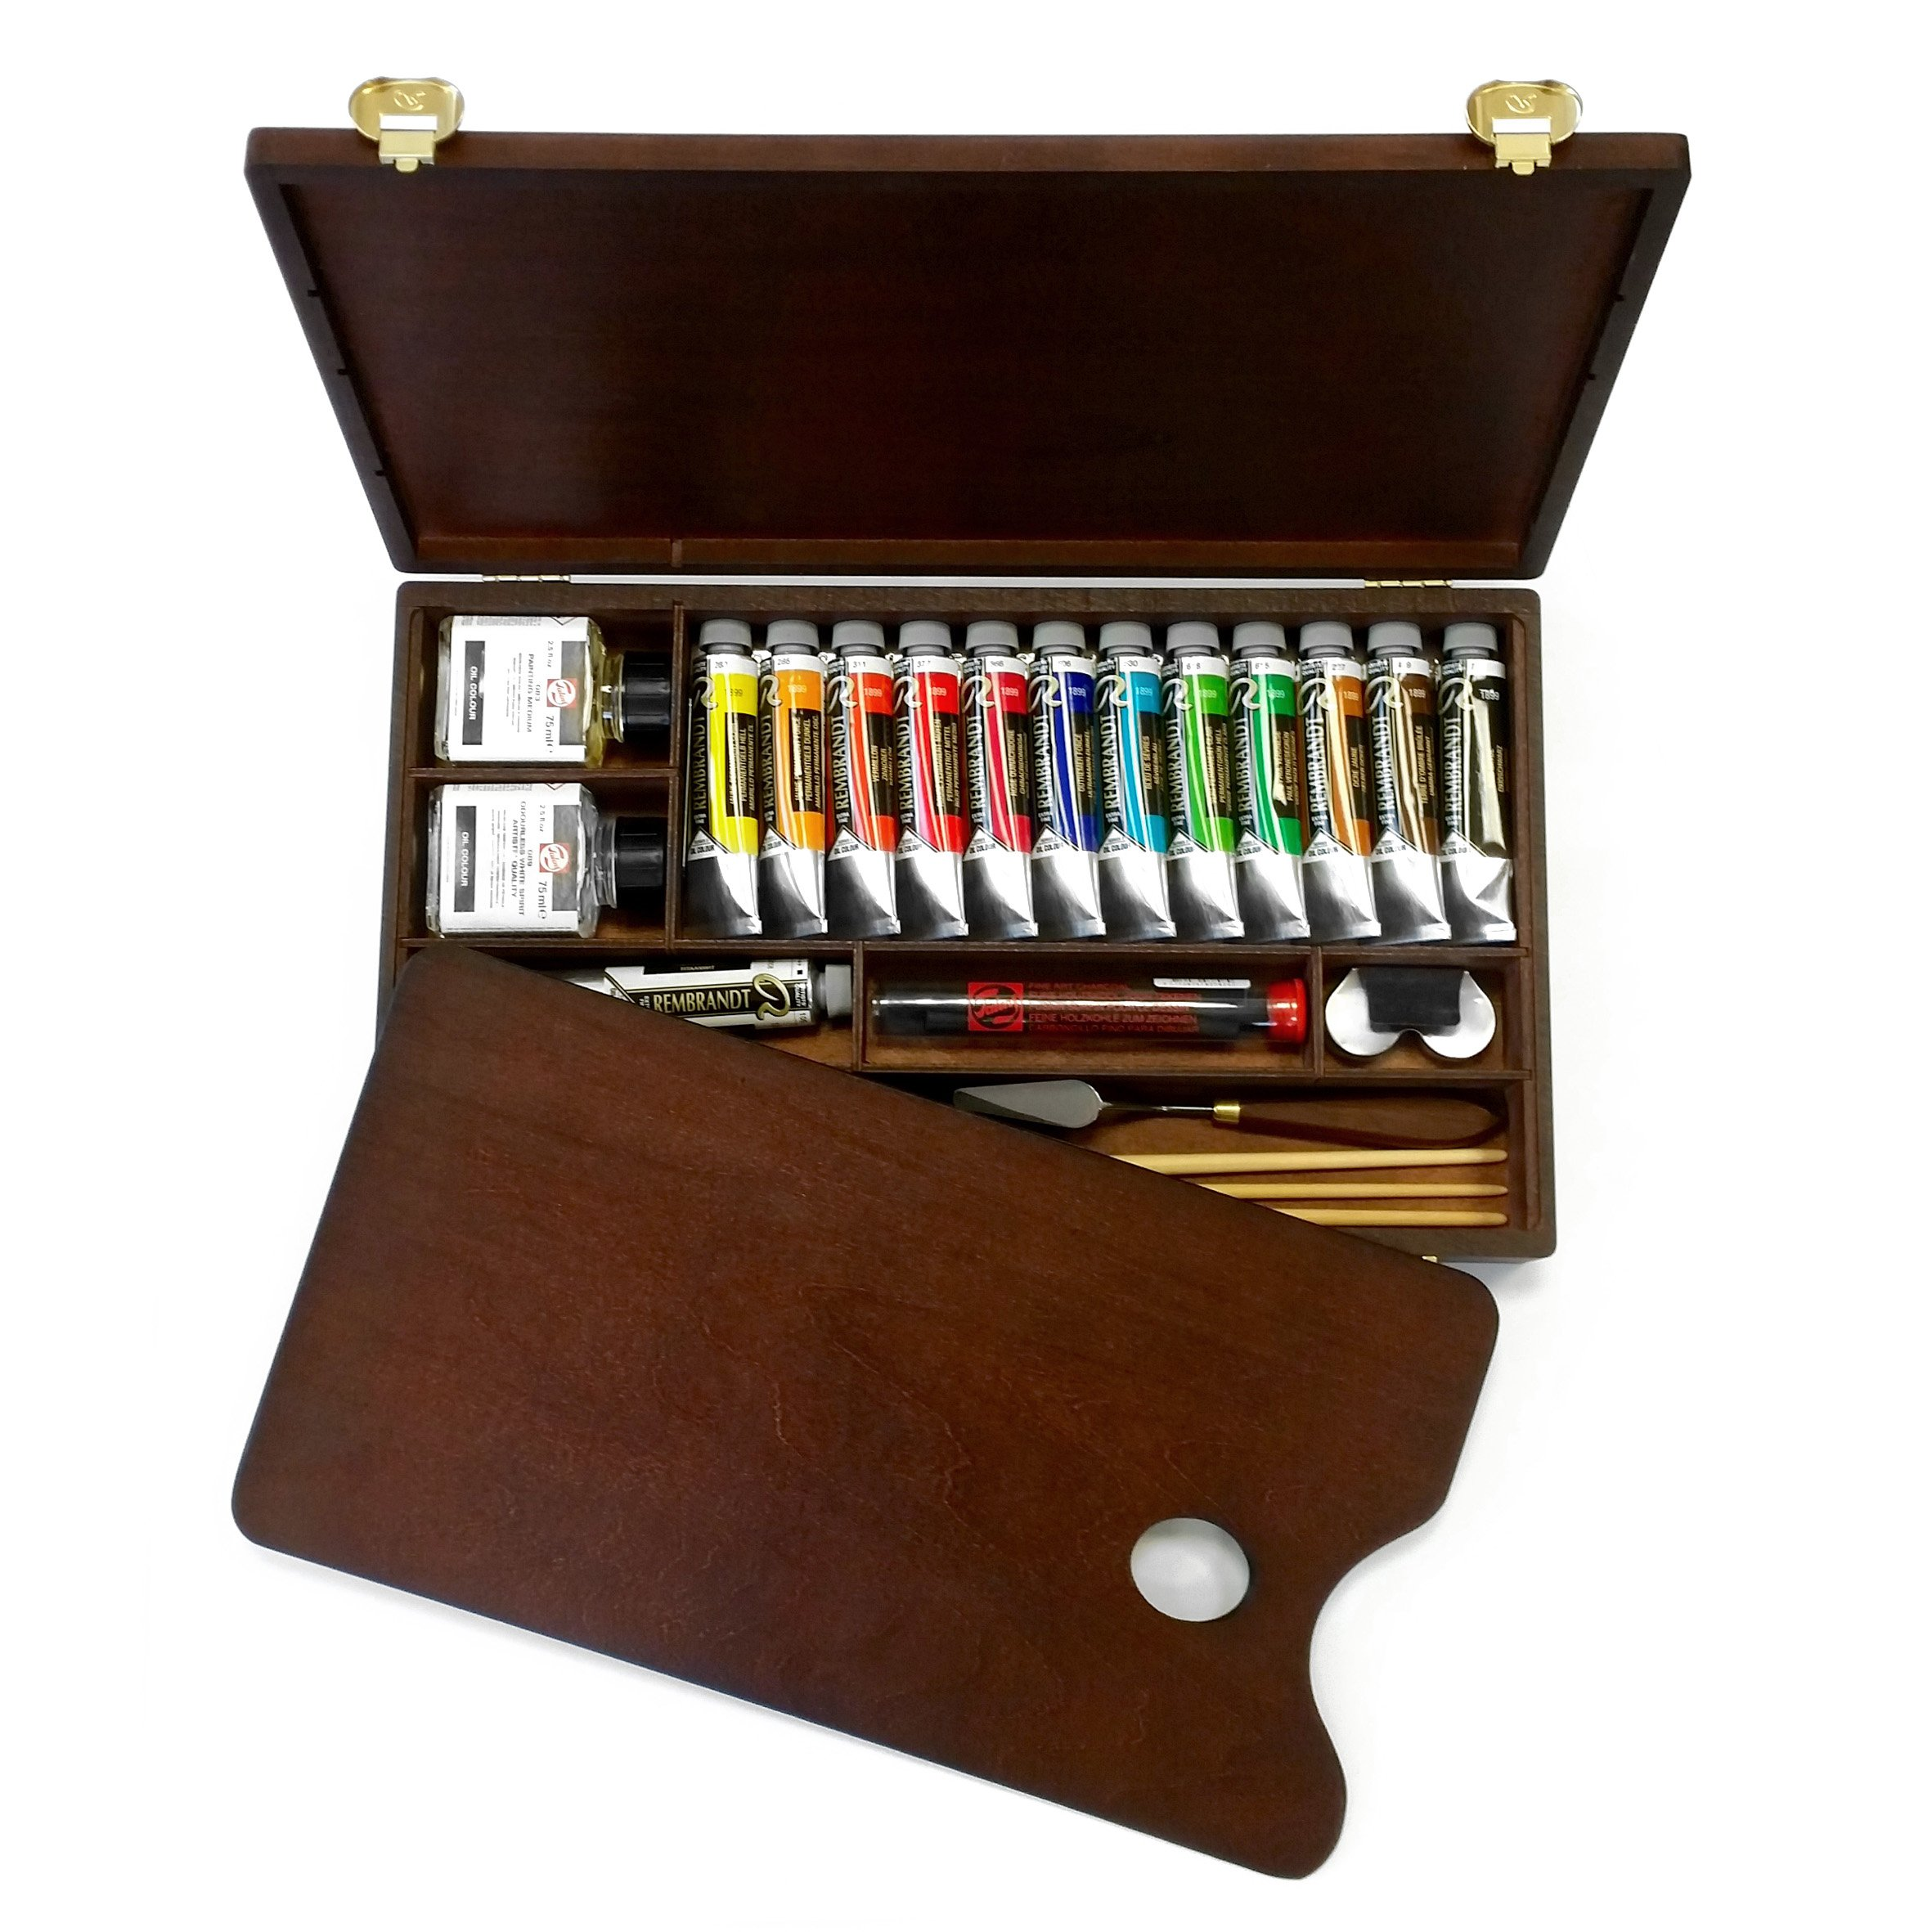 Royal Talens - Rembrandt Oil Colour Box - Professional Edition in Wooden Chest - With Paints, Palette, and Brushes